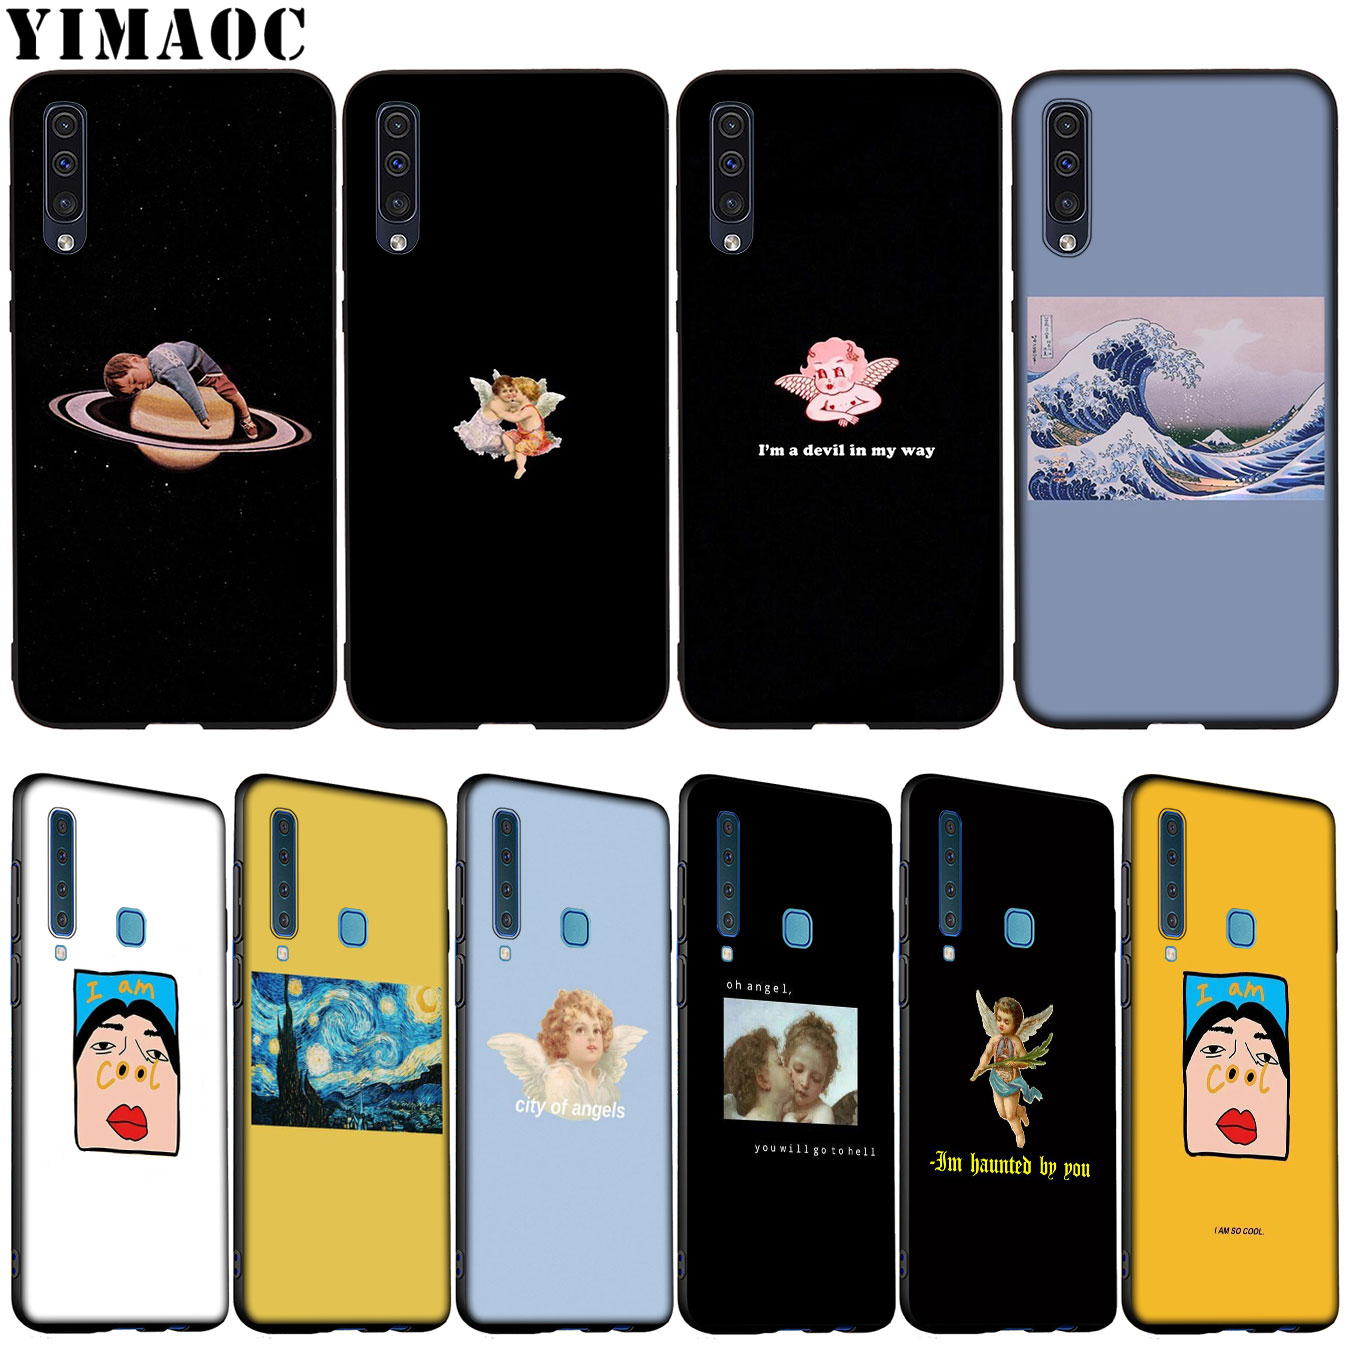 YIMAOC Sculpture Art Mona Lisa Soft Silicone Case for Samsung Galaxy A70 A60 A50 A40 A30 A20 A10 A10S A20S A30S A40S A50S Cover image